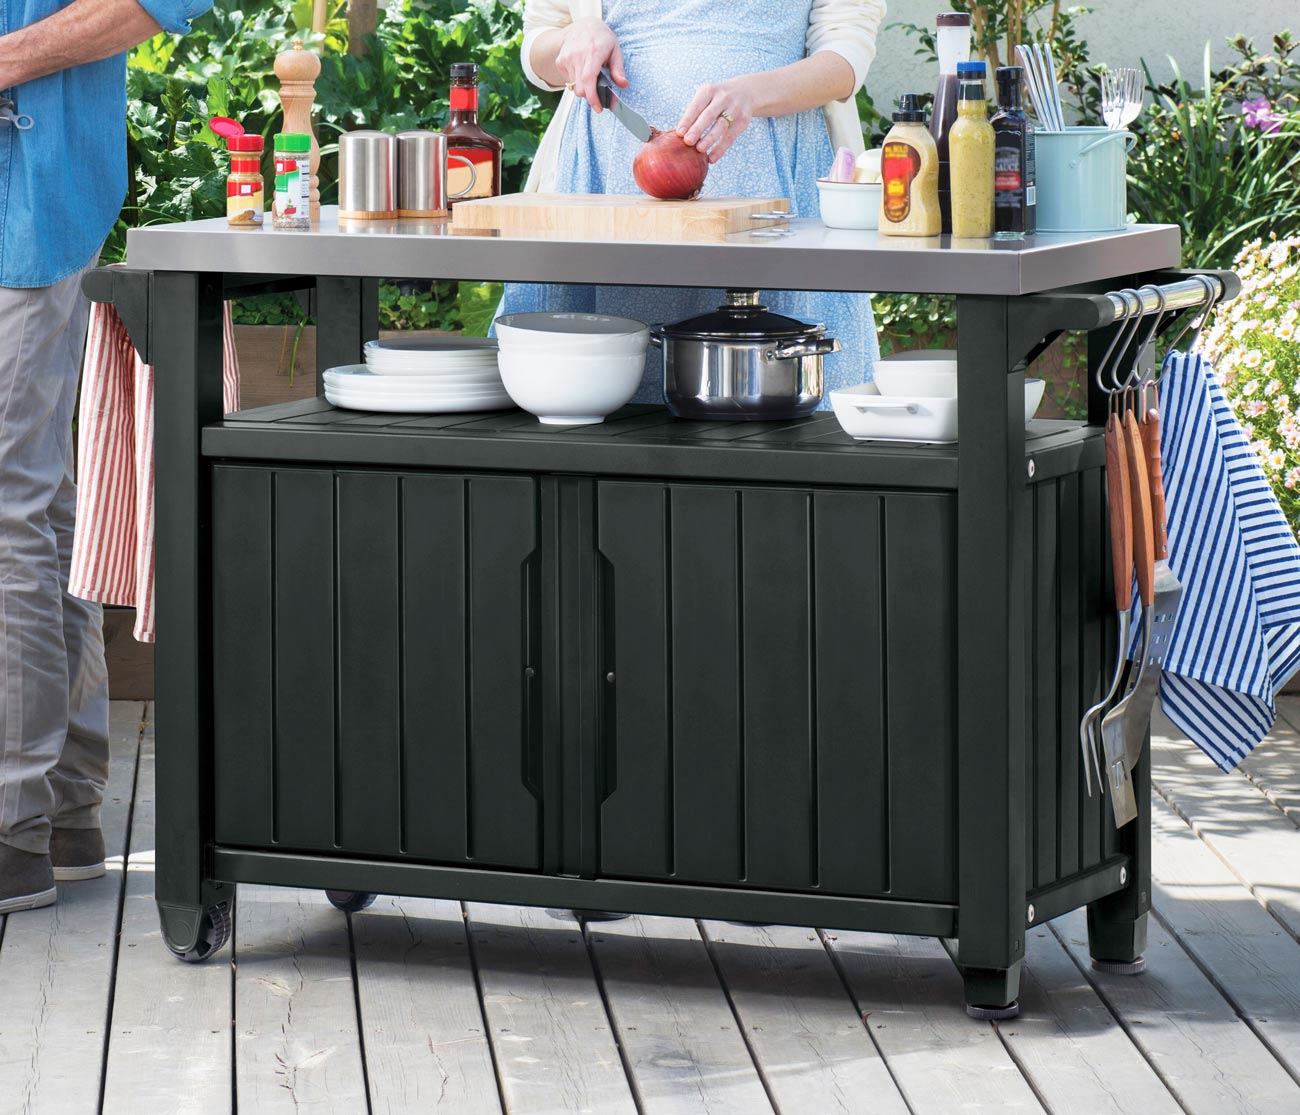 Keter Unity Bbq Storage Work Table 393 Sydney Garden Products